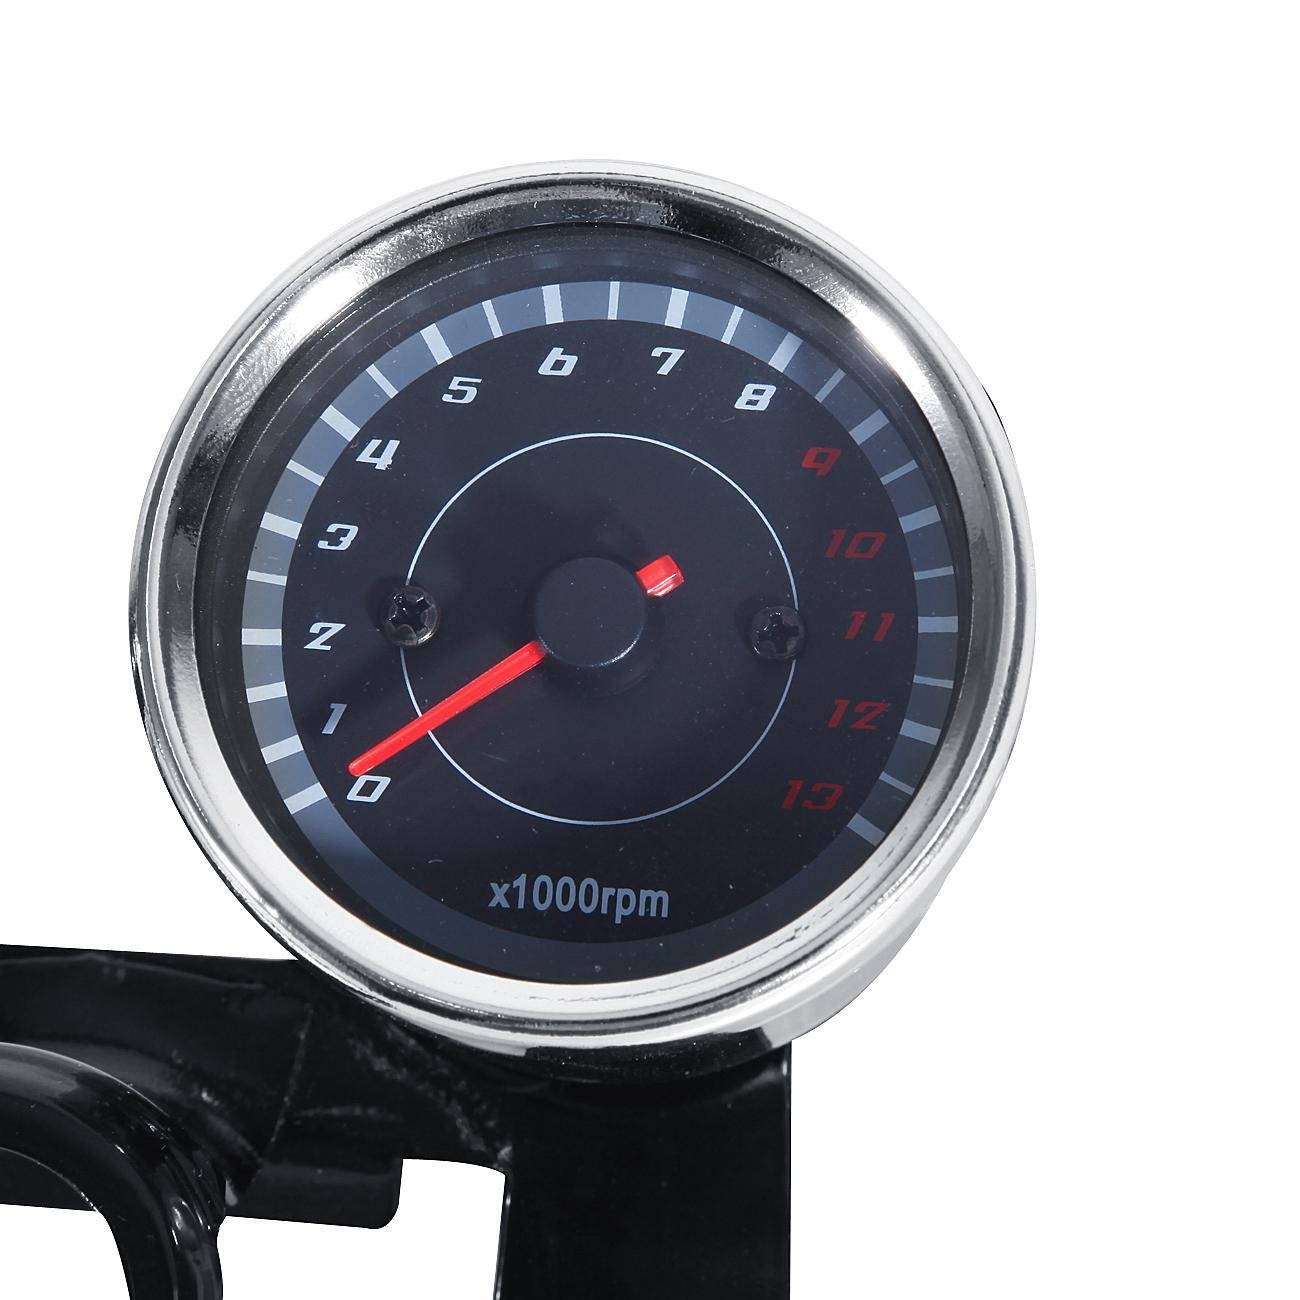 INNOGLOW Motorcycle Backlit Speedometer Tachometer Kit with Bracket,High Capacity Scale,Full-Sweep red Index,0-13000RPM,0-180km/h by INNOGLOW (Image #4)